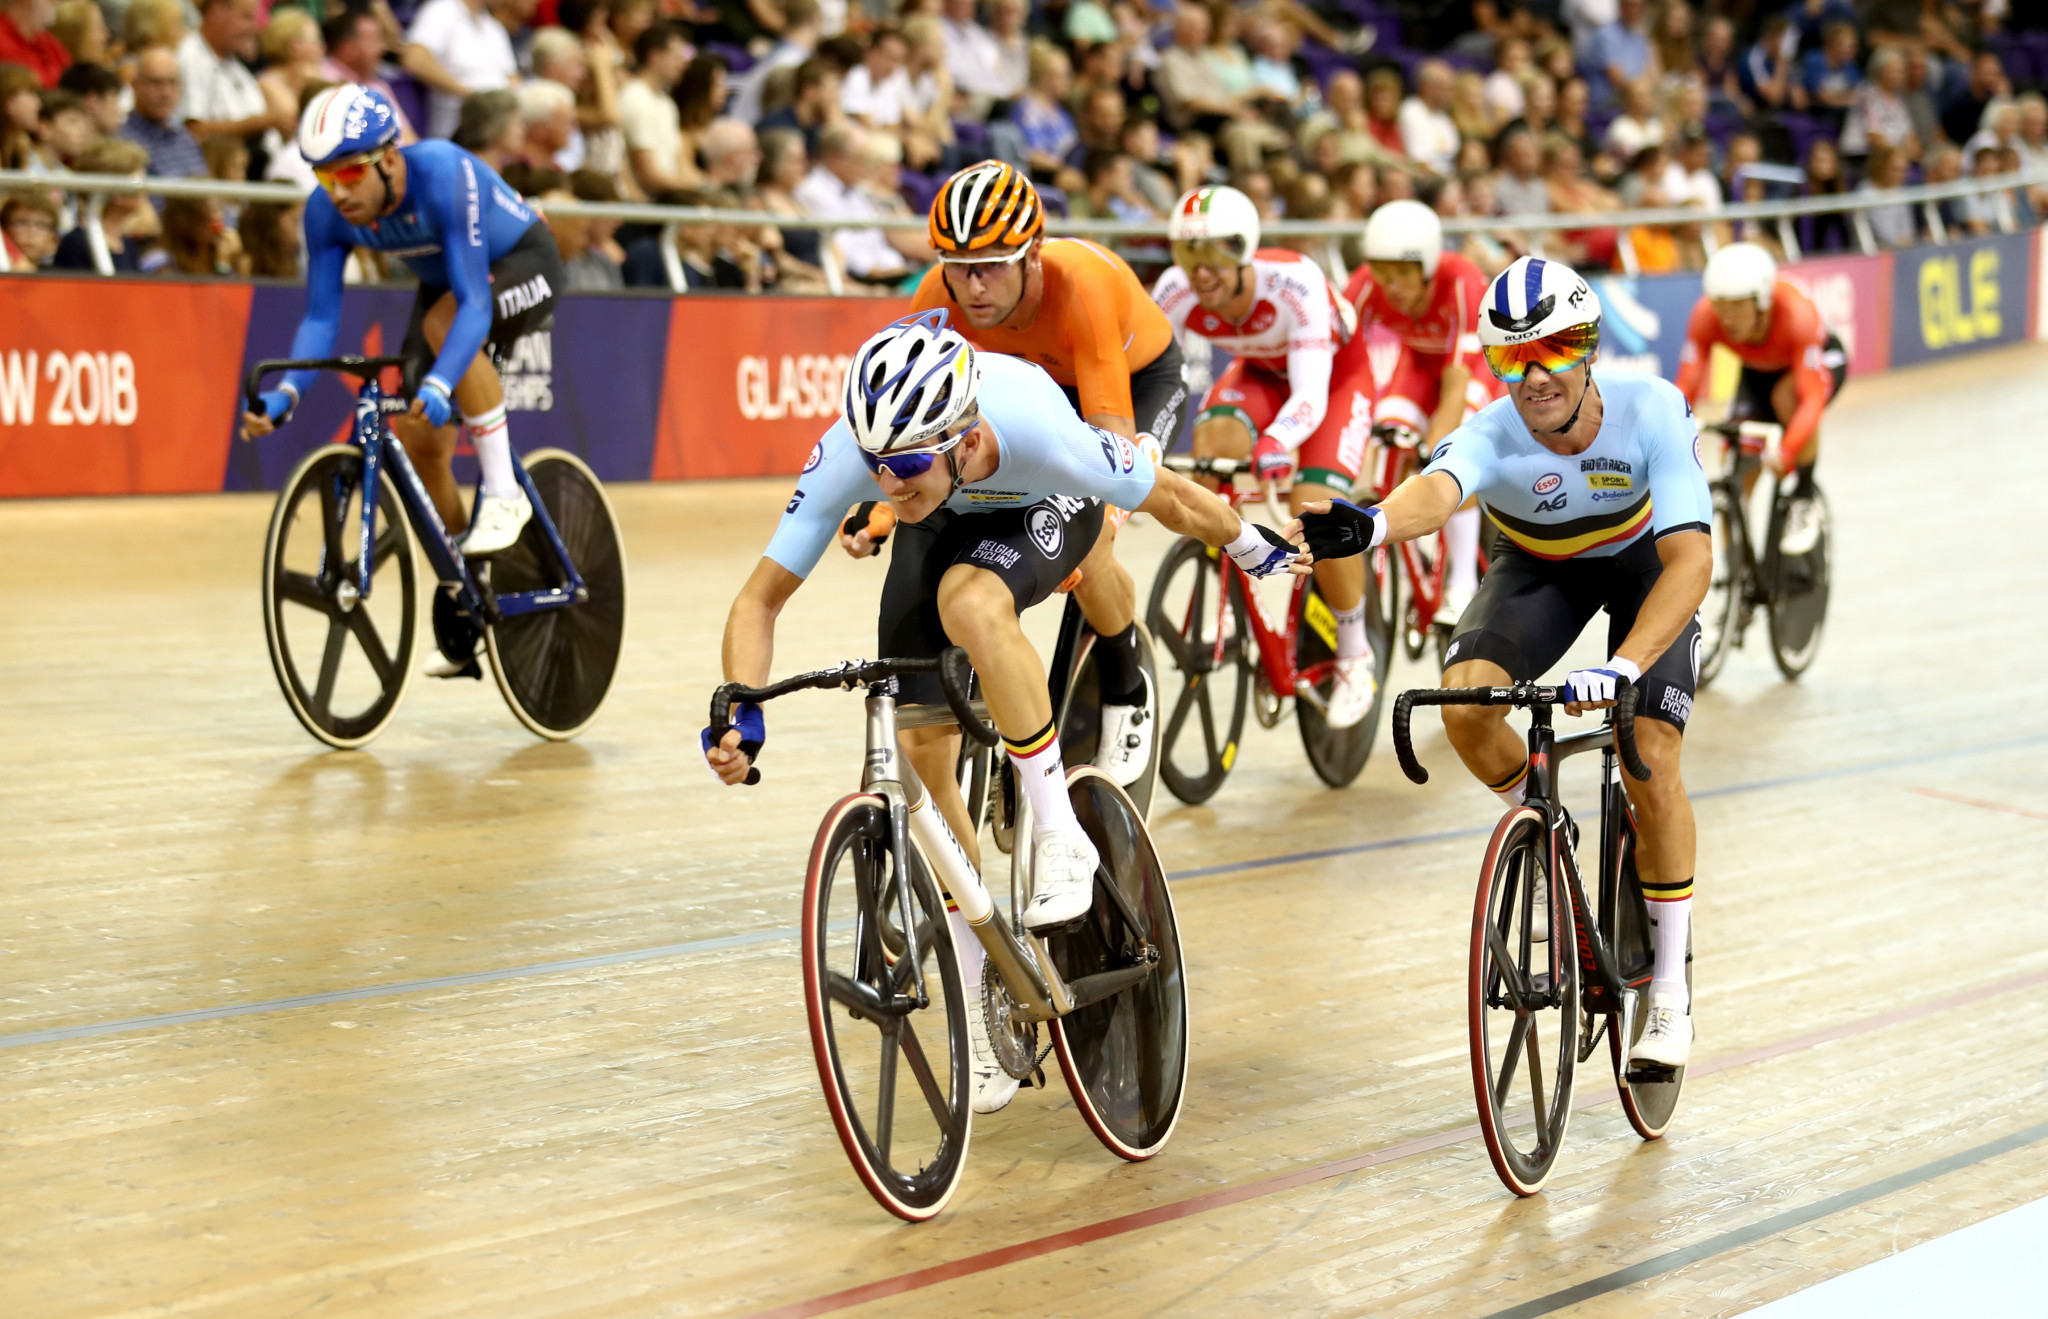 Belgium's Kenny De Ketele and Robbe Ghys won the men's madison competition ©Getty Images